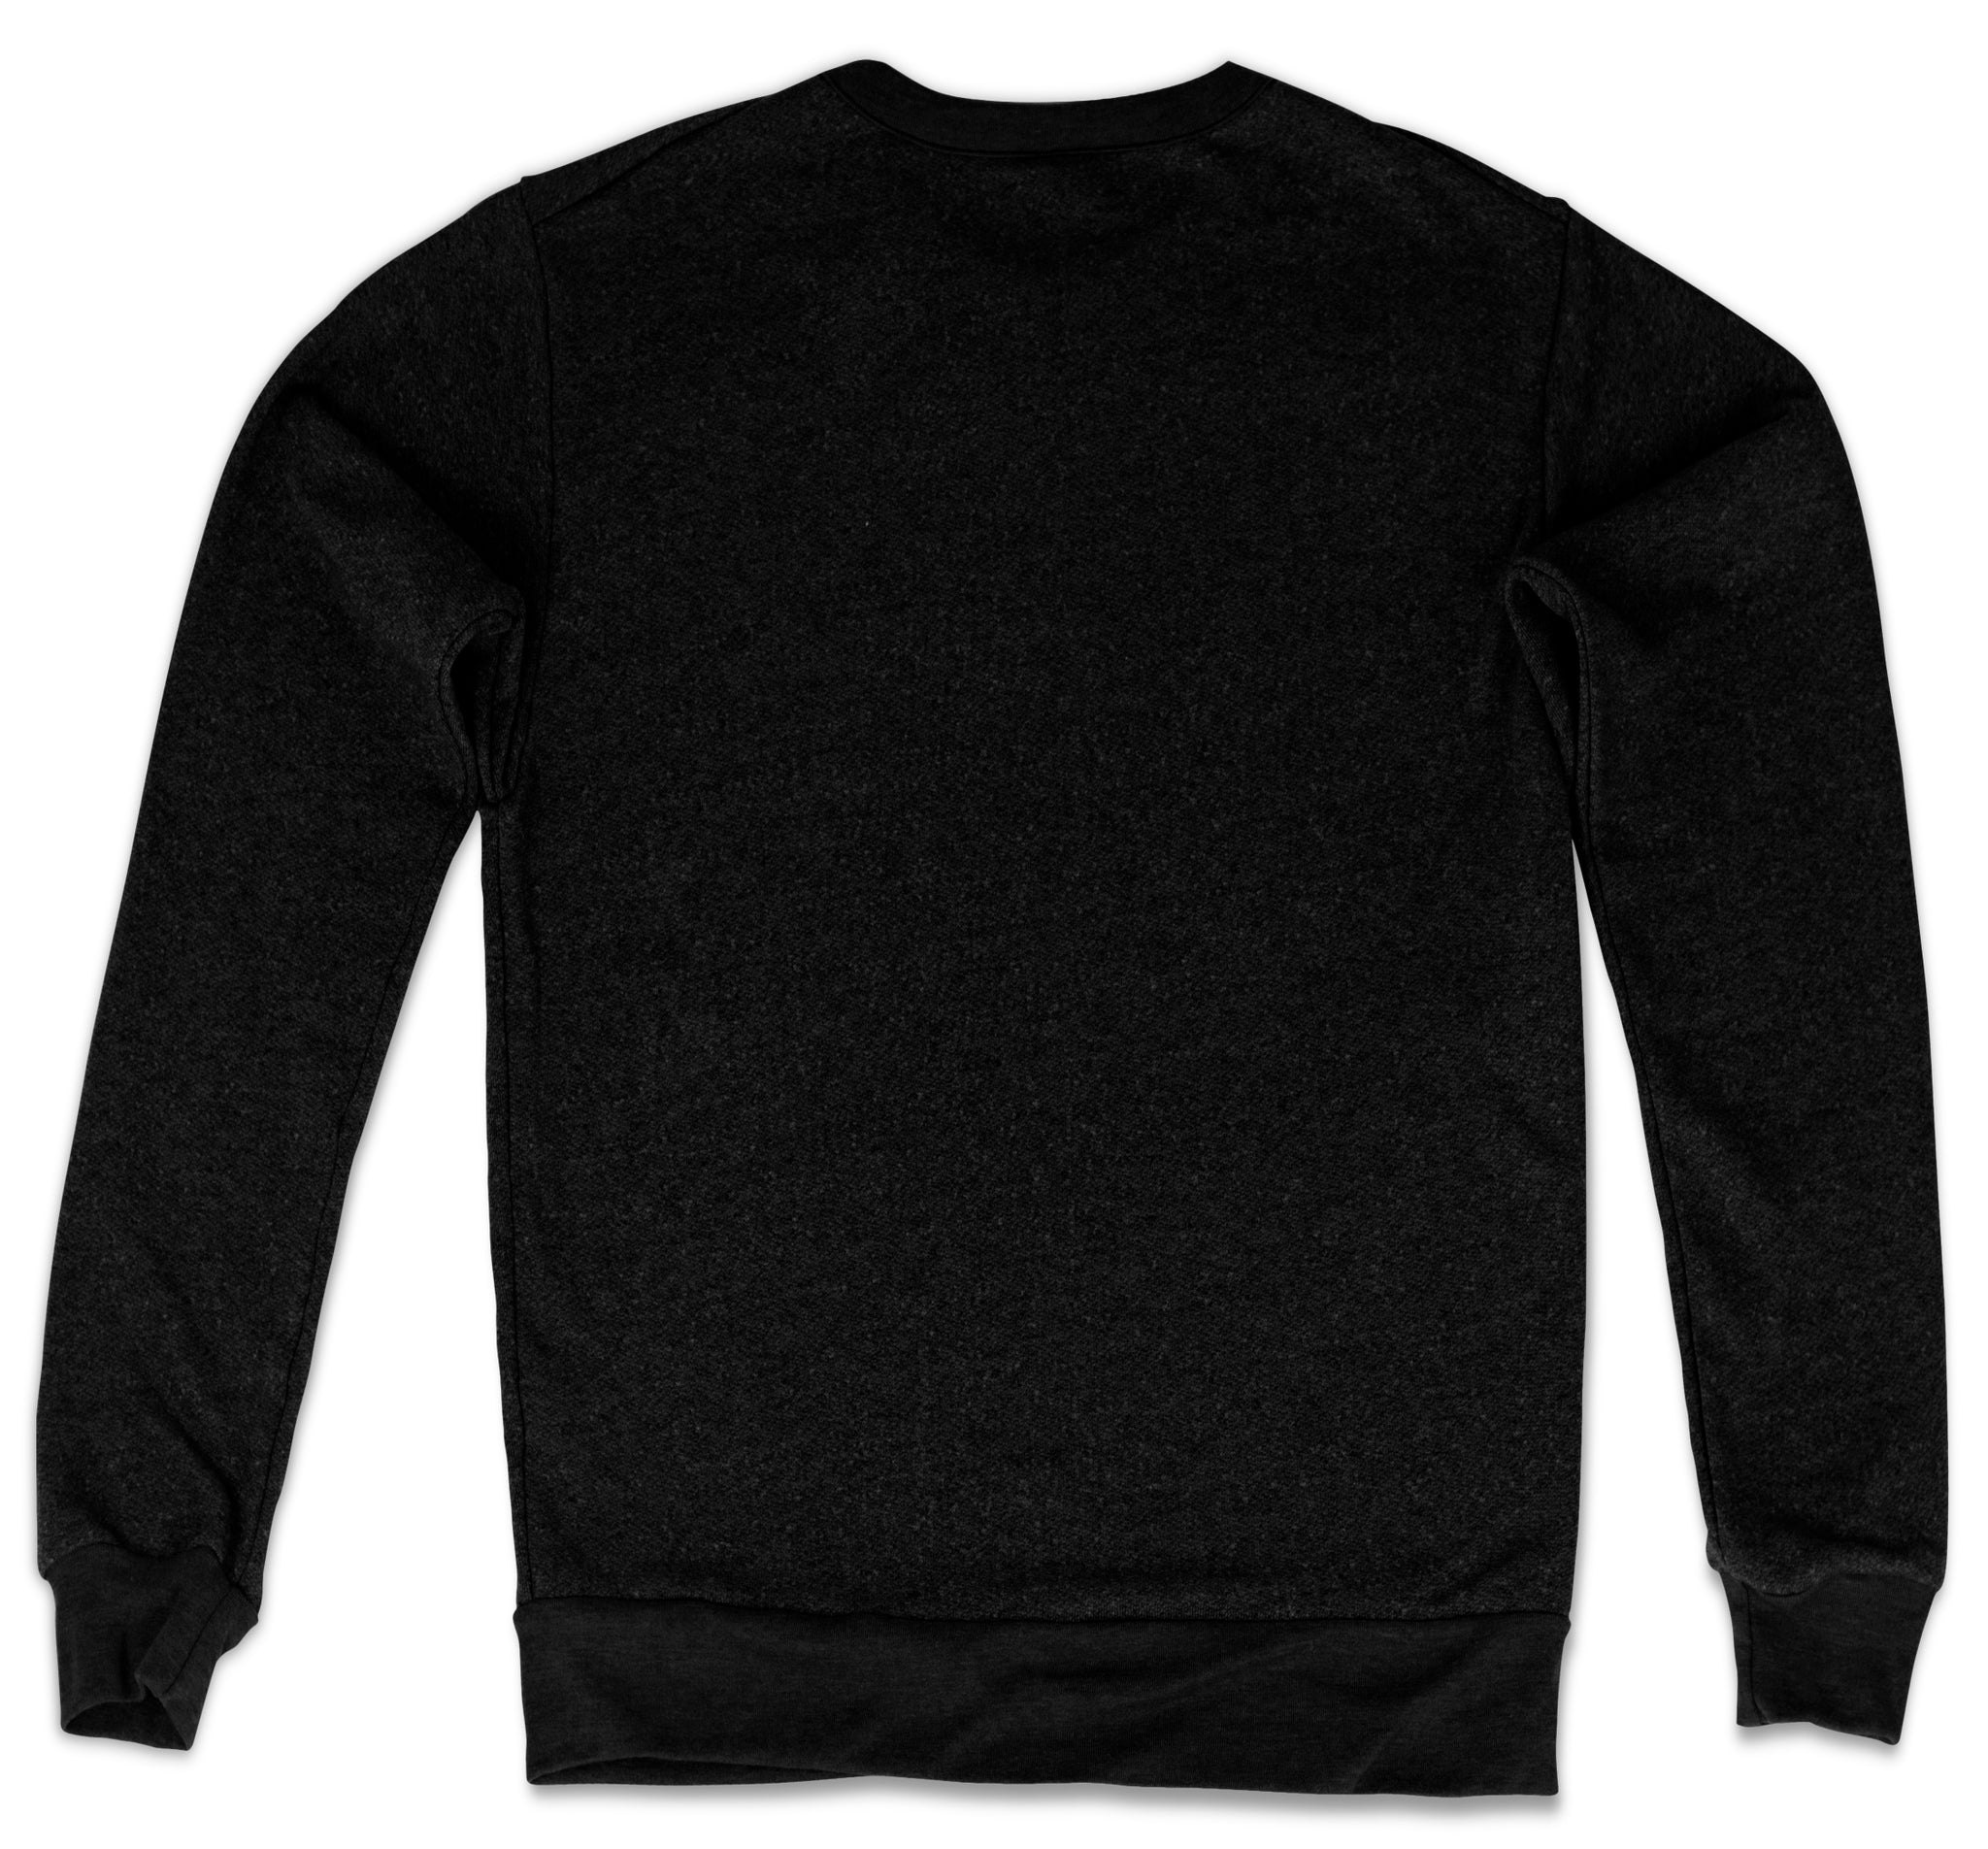 DELIVERED FRESH CREWNECK (BLACK)